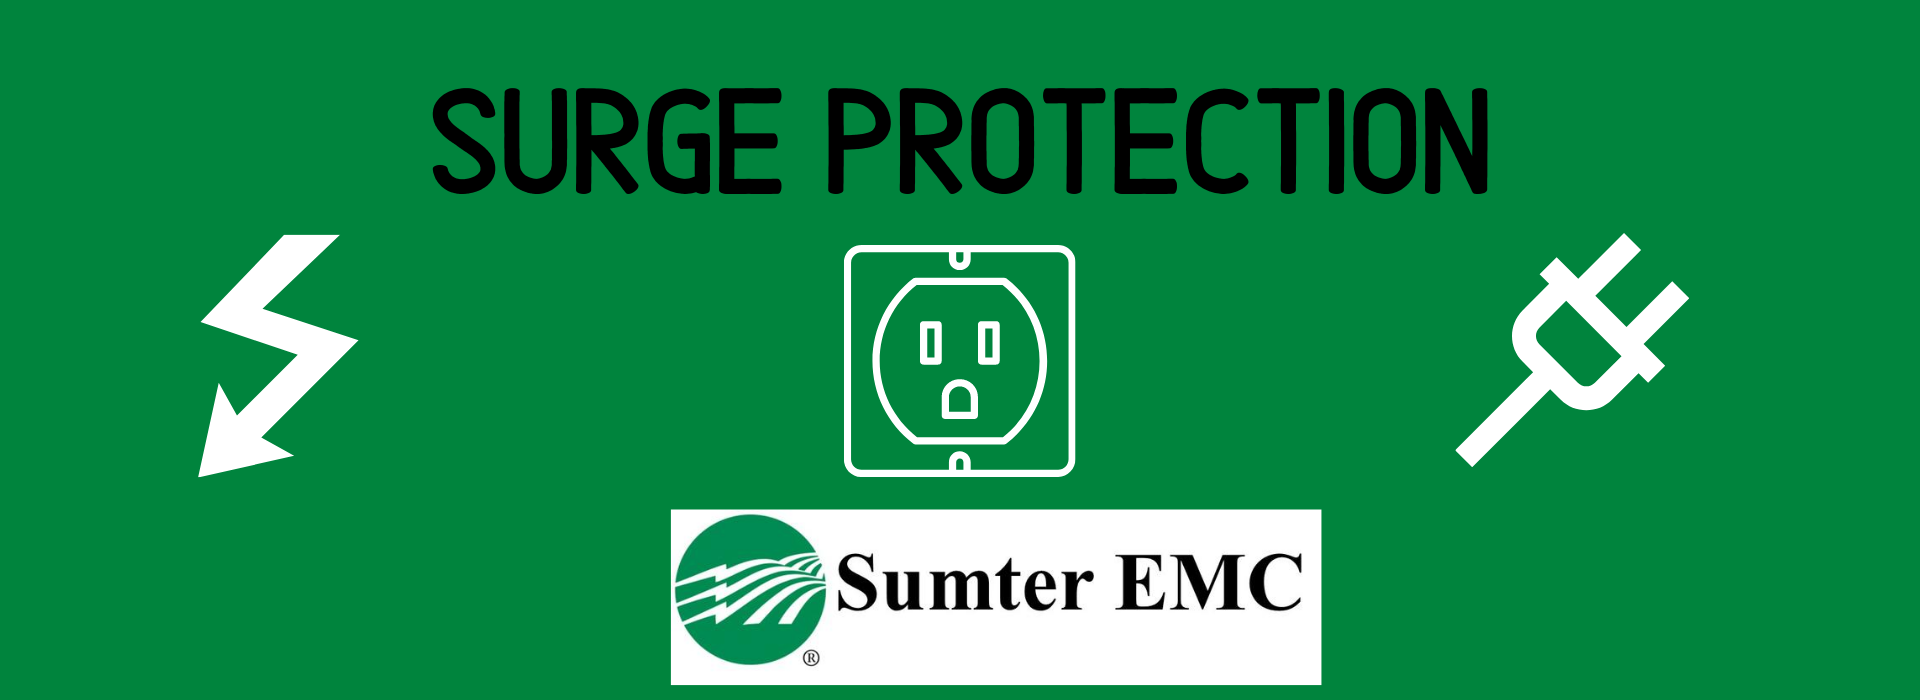 Surge Protection.png